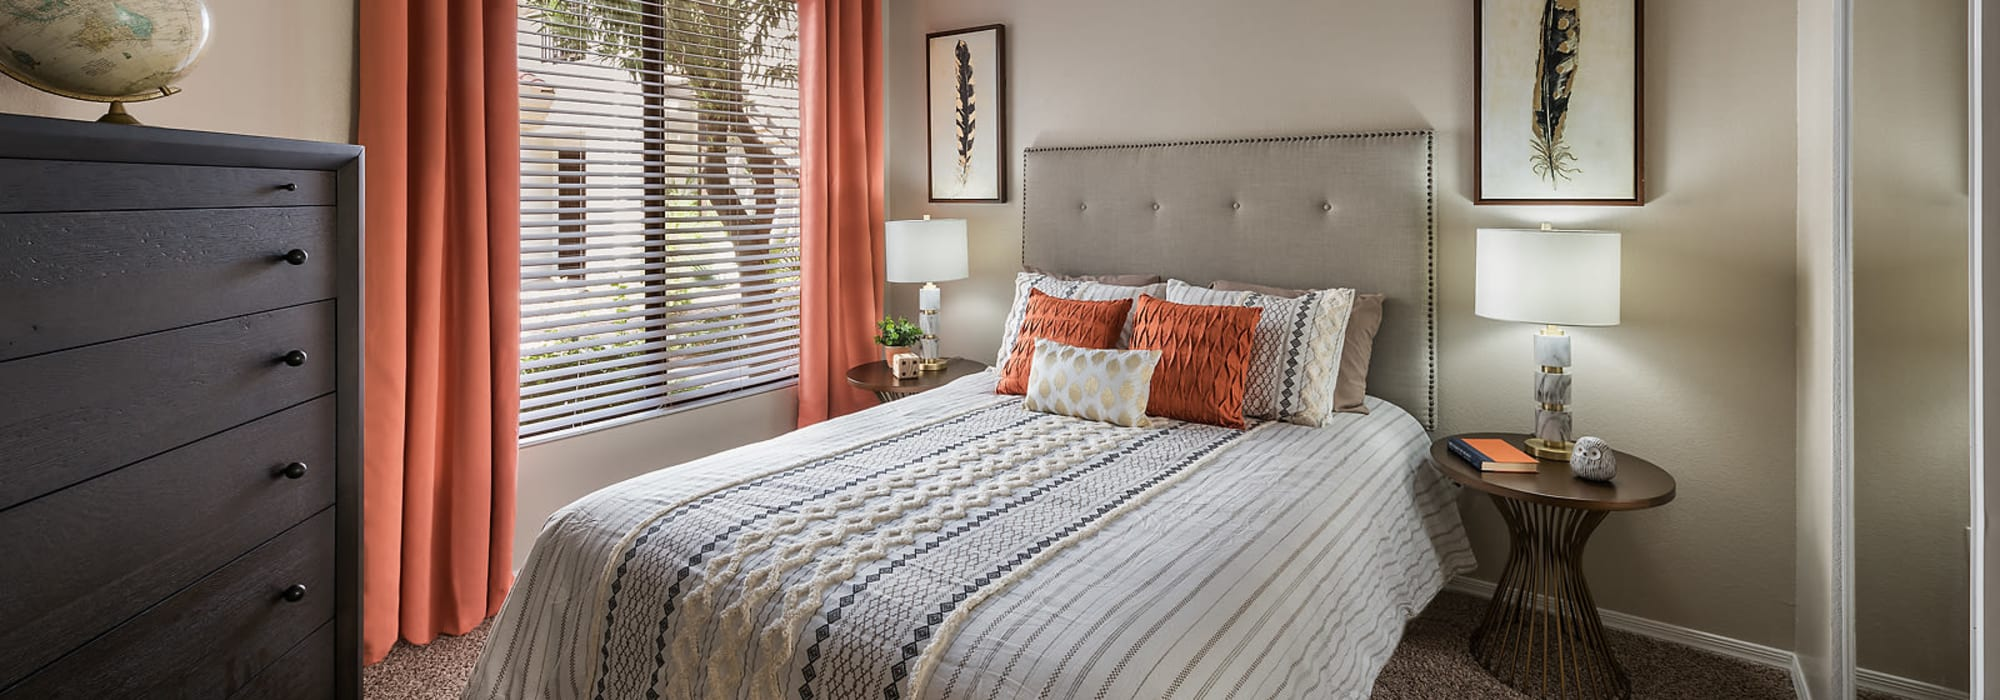 Modern luxury bedroom with furniture at San Palmas in Chandler, Arizona